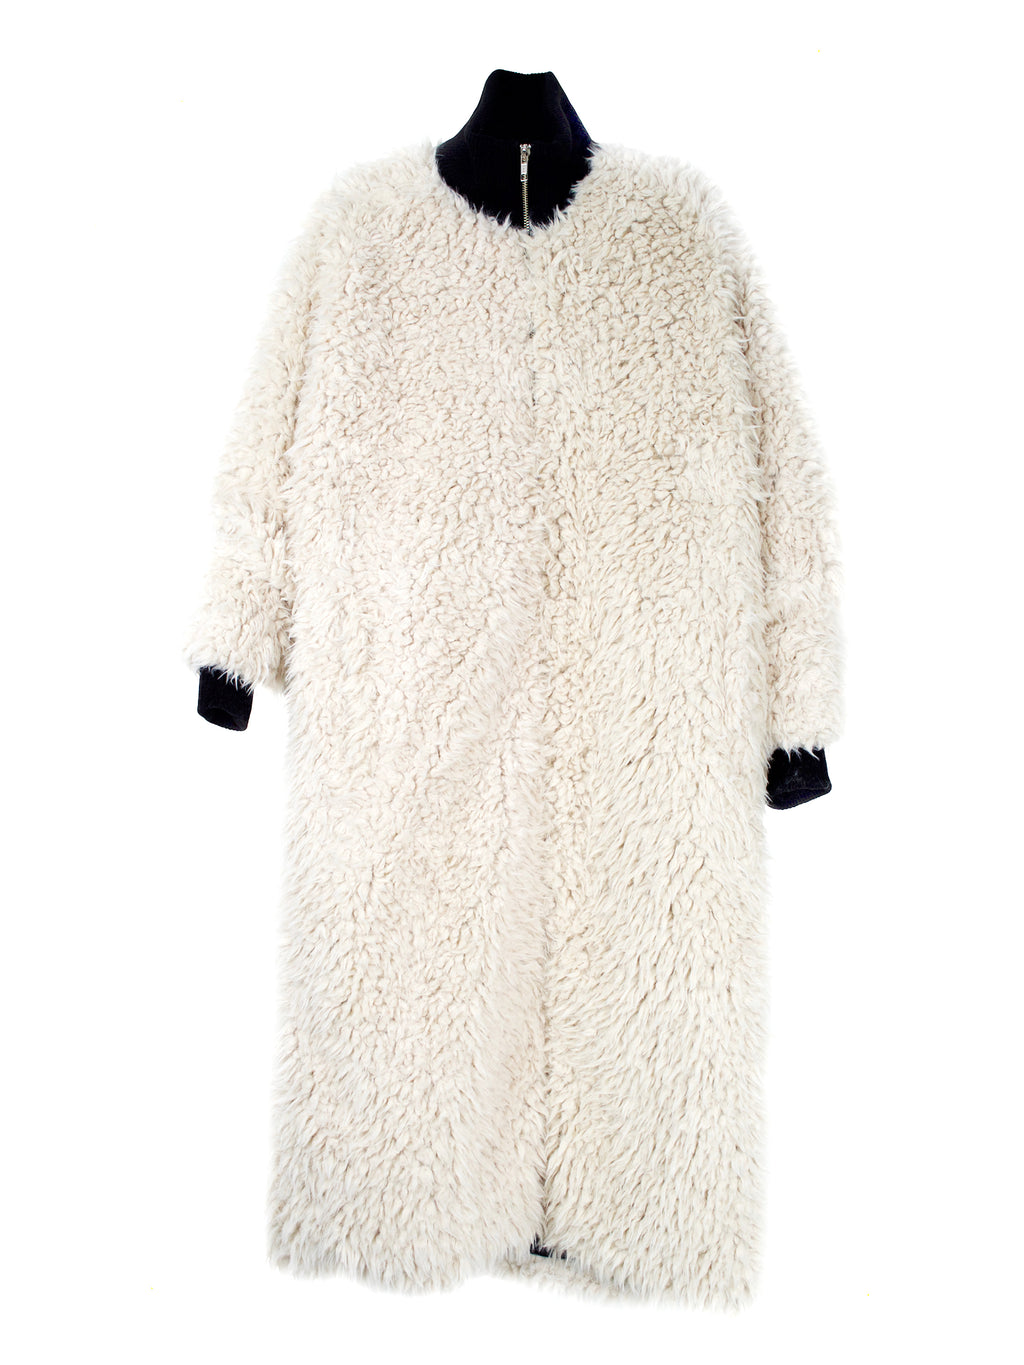 IGWT - Blob Coat / Off White Faux Fur